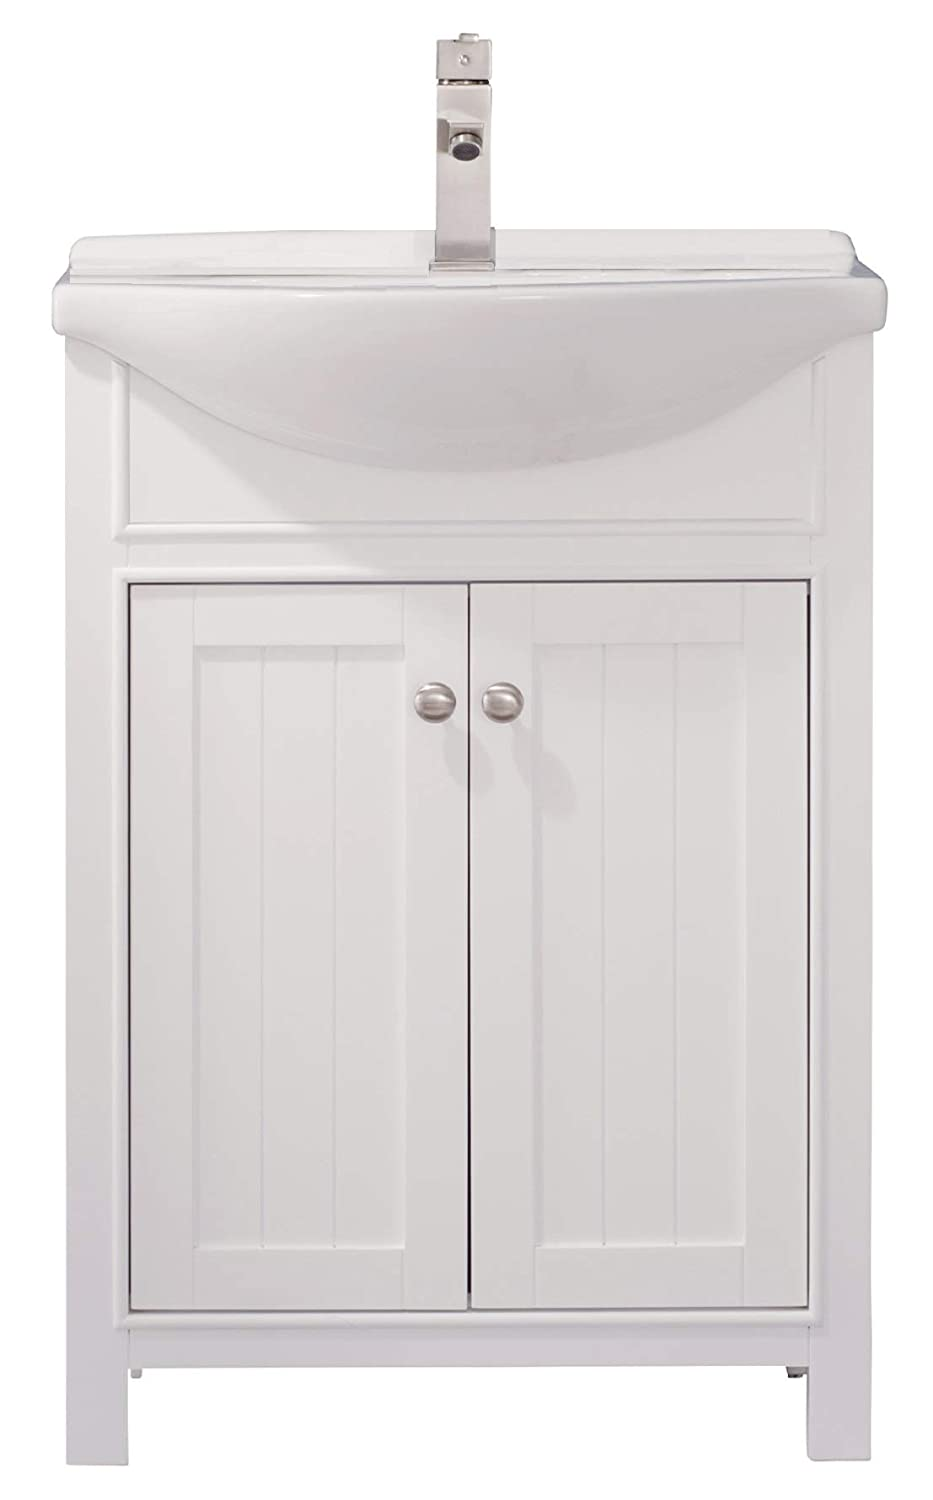 Luca Kitchen Bath LC24HWP Carson 24 Bathroom Vanity Set in White Made with Hardwood and Integrated Porcelain Top